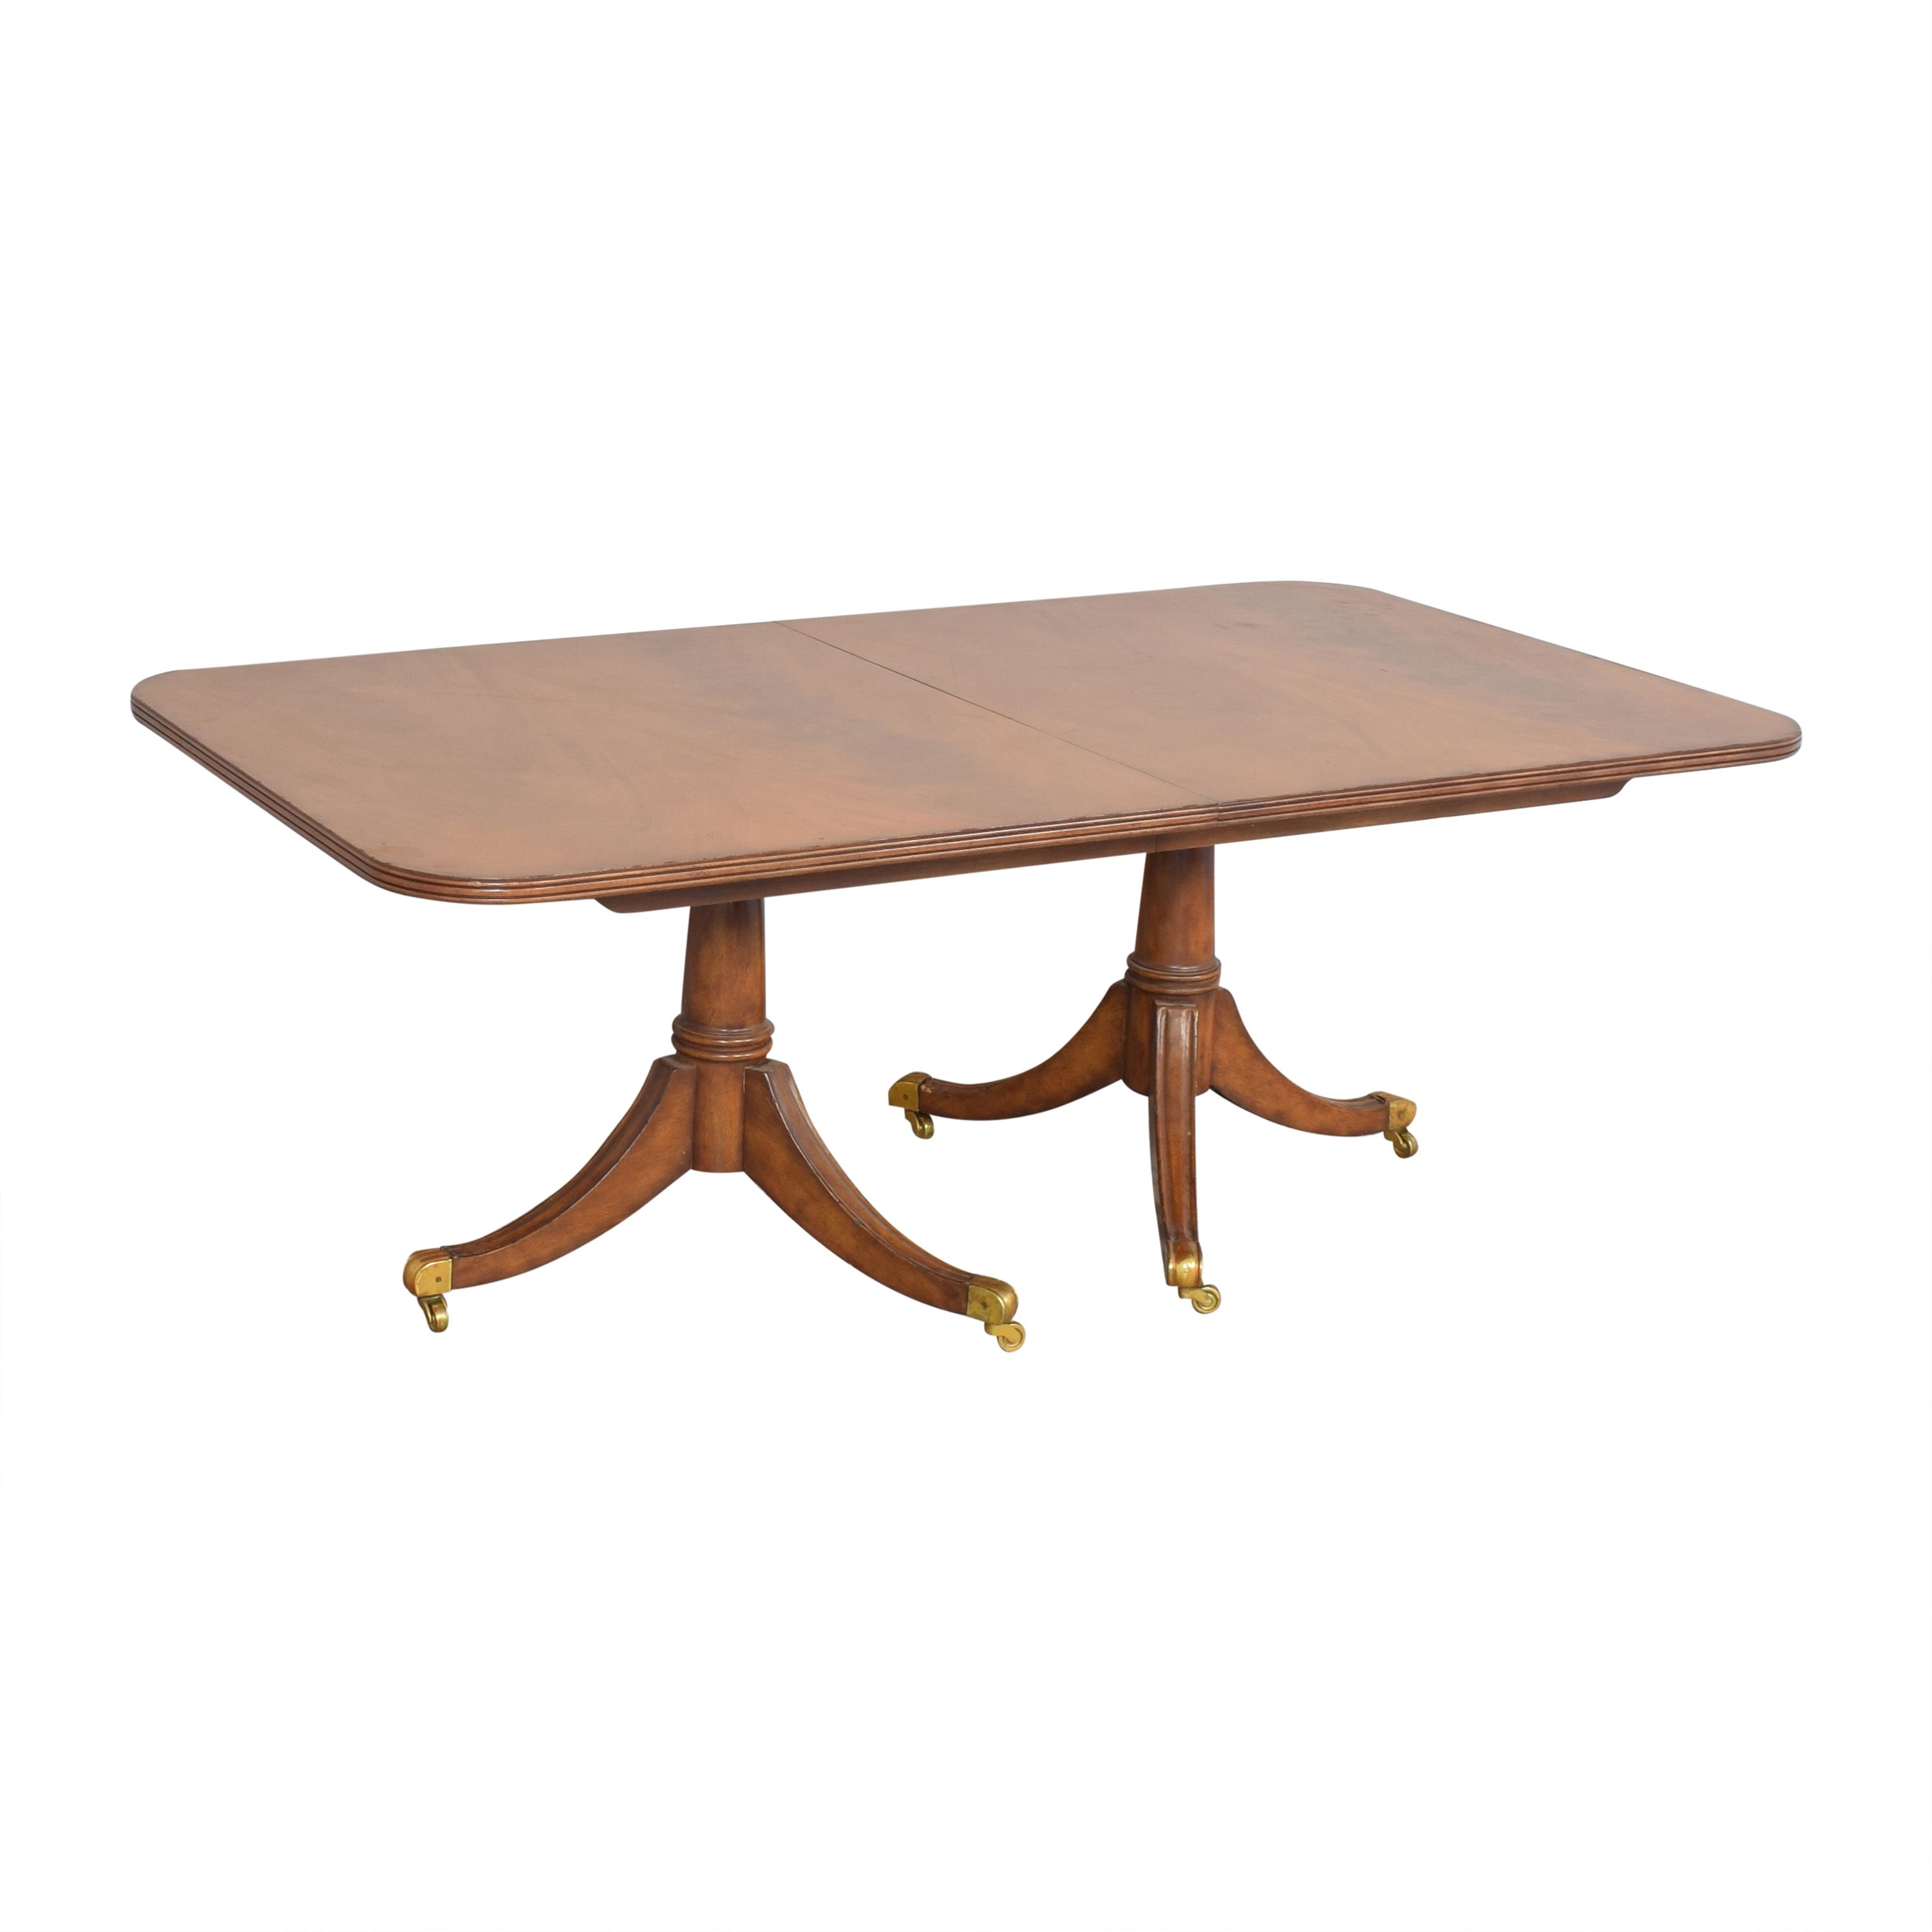 Maitland-Smith Maitland-Smith Double Pedestal Extendable Dining Table